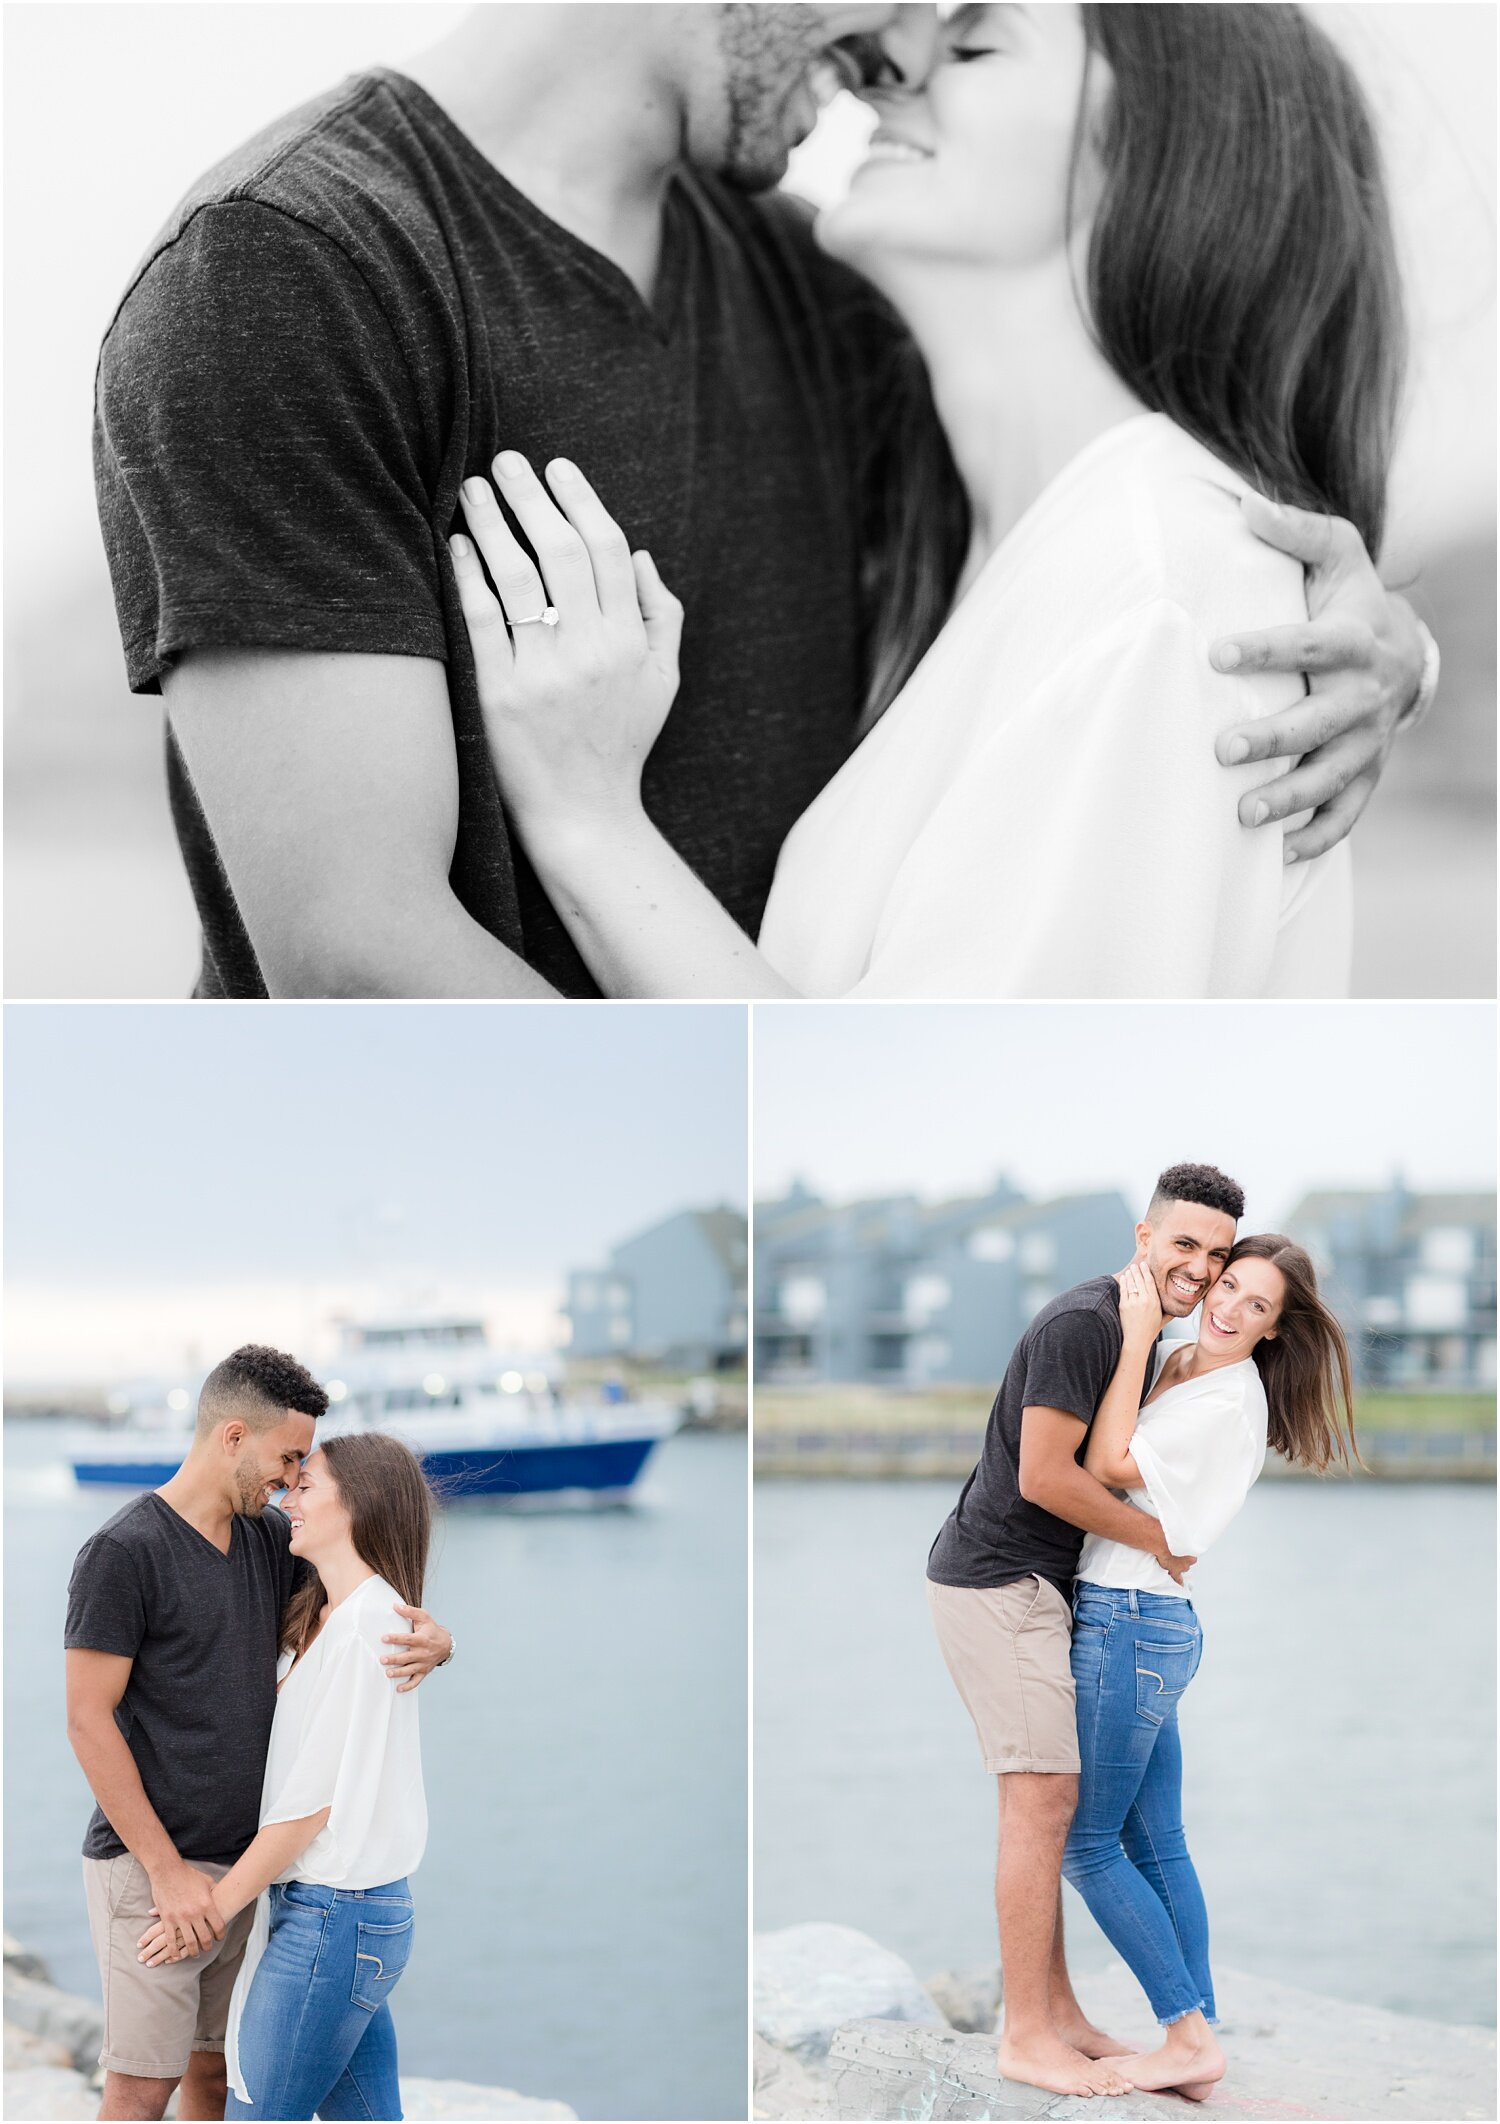 Engagement photos at the Manasquan inlet.